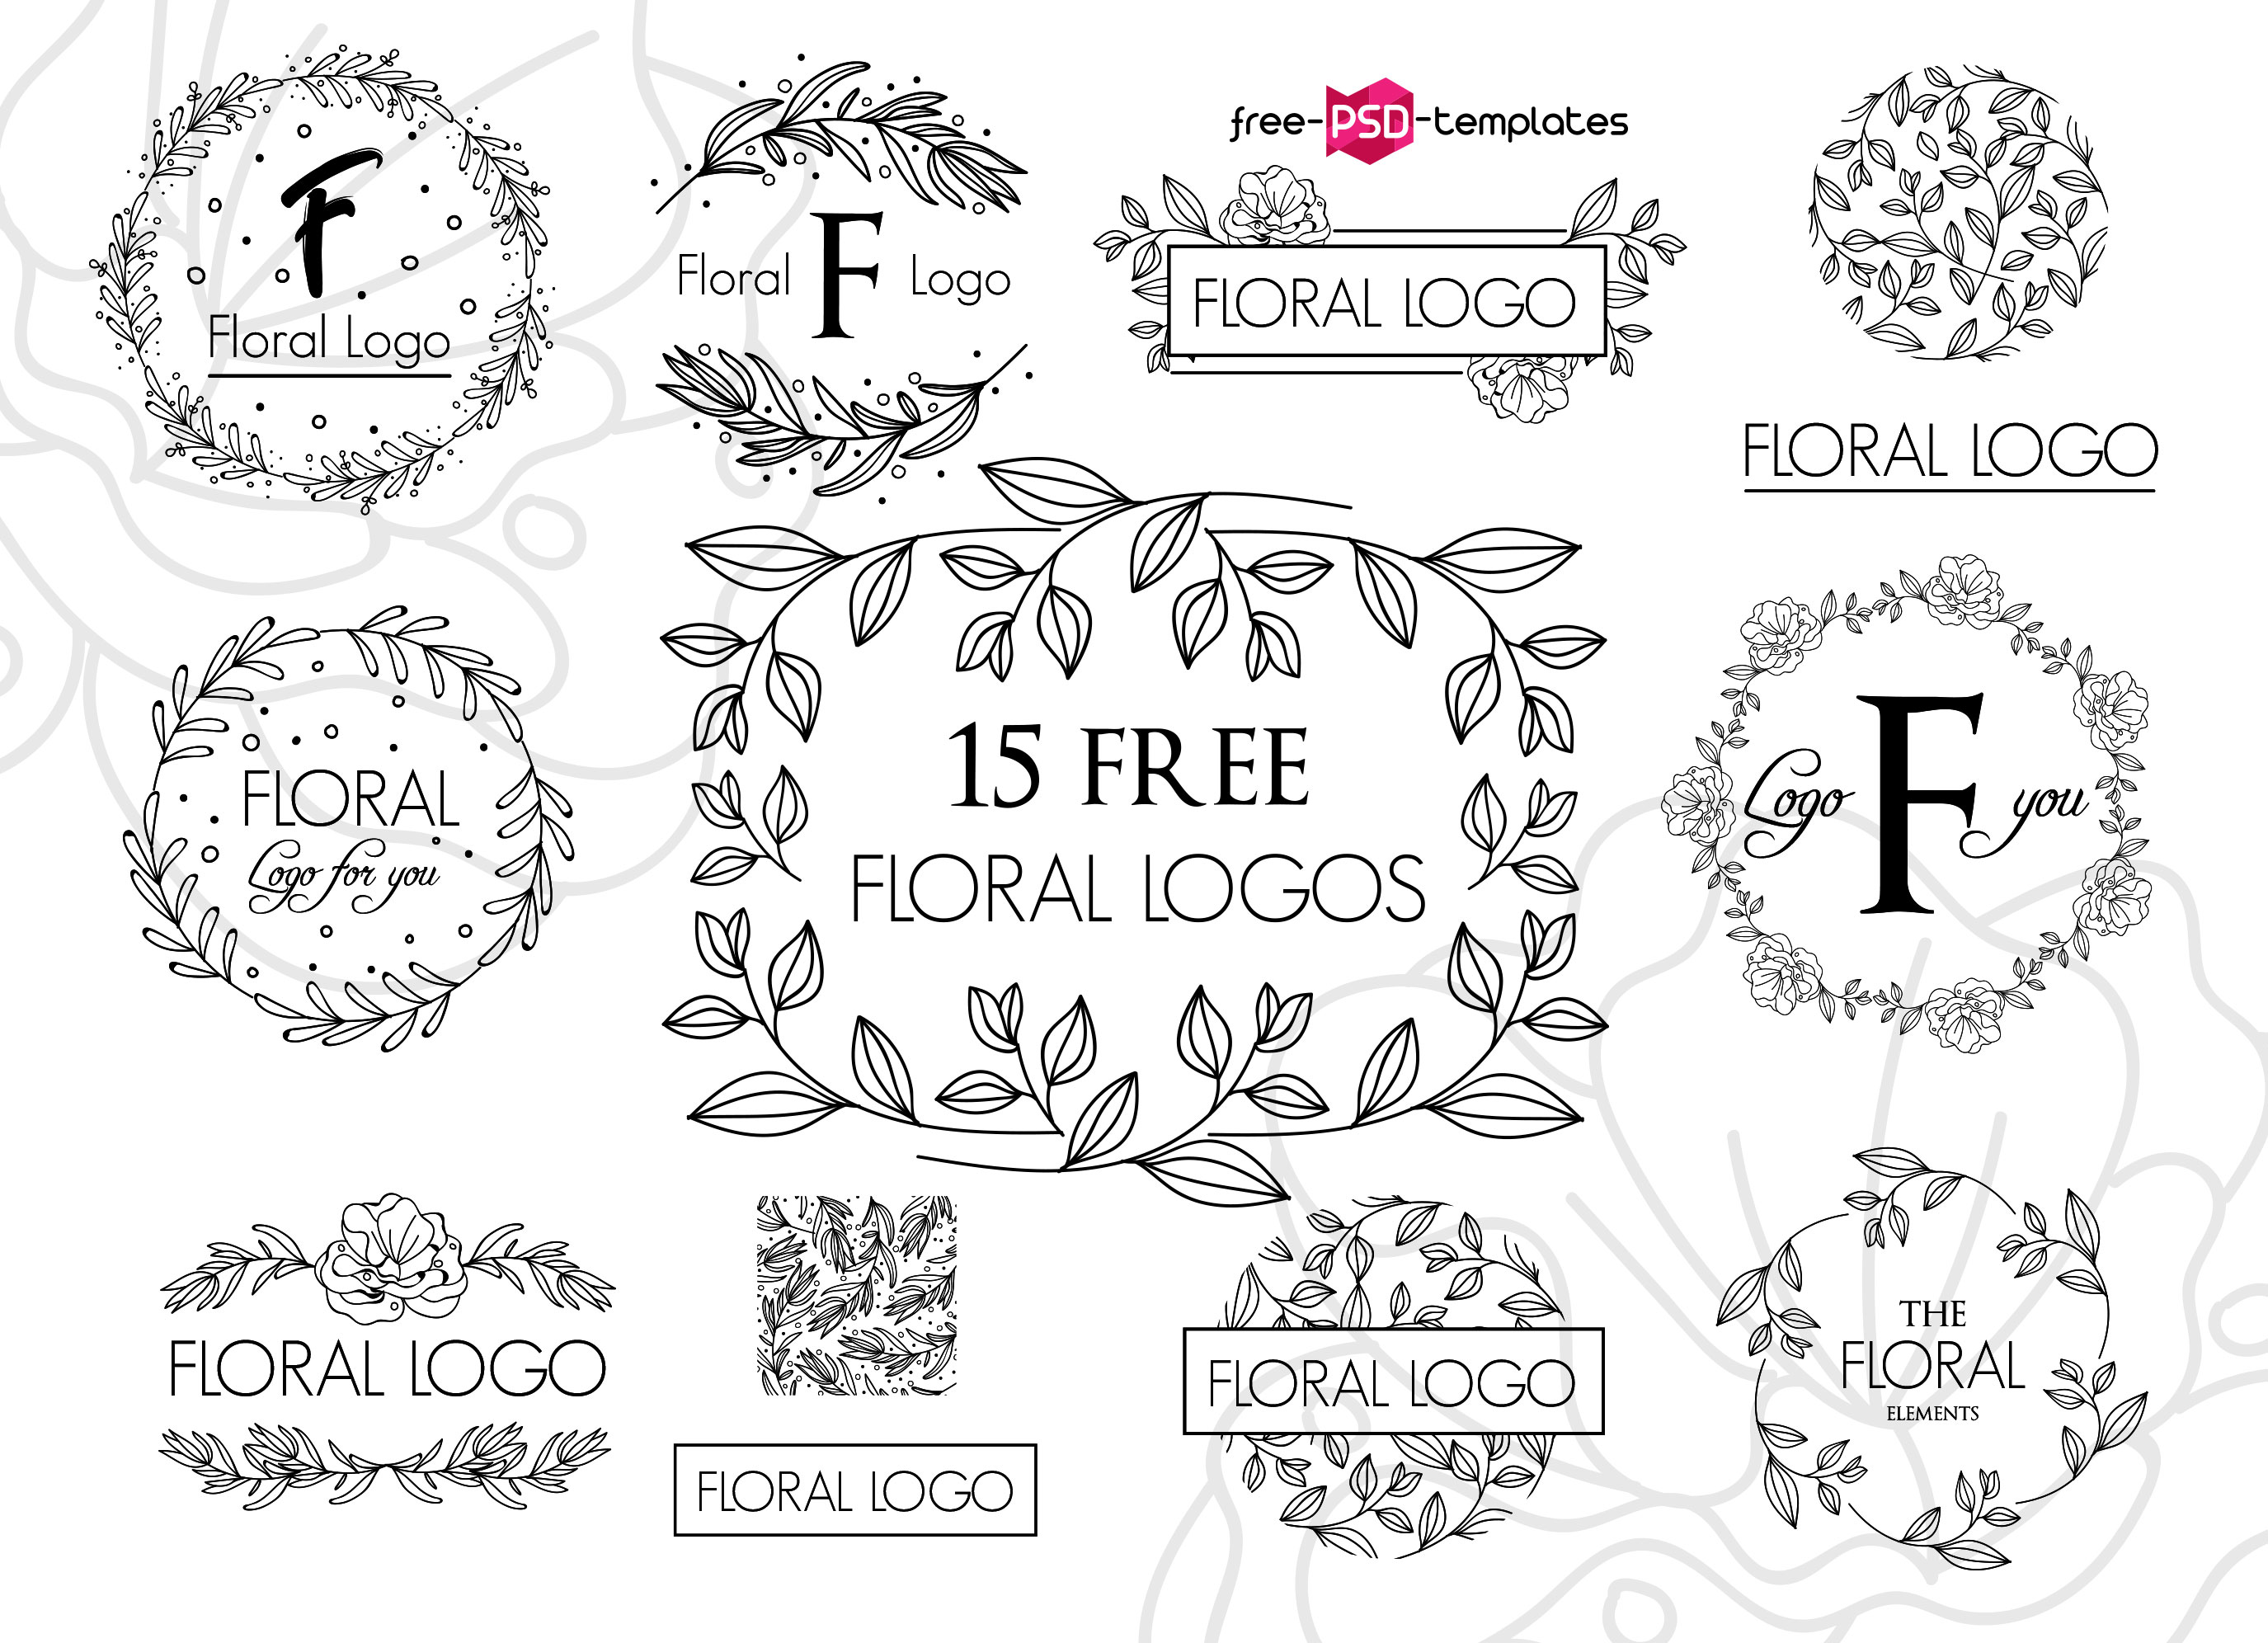 82+Premium & Absolutely Free Logos templates for business